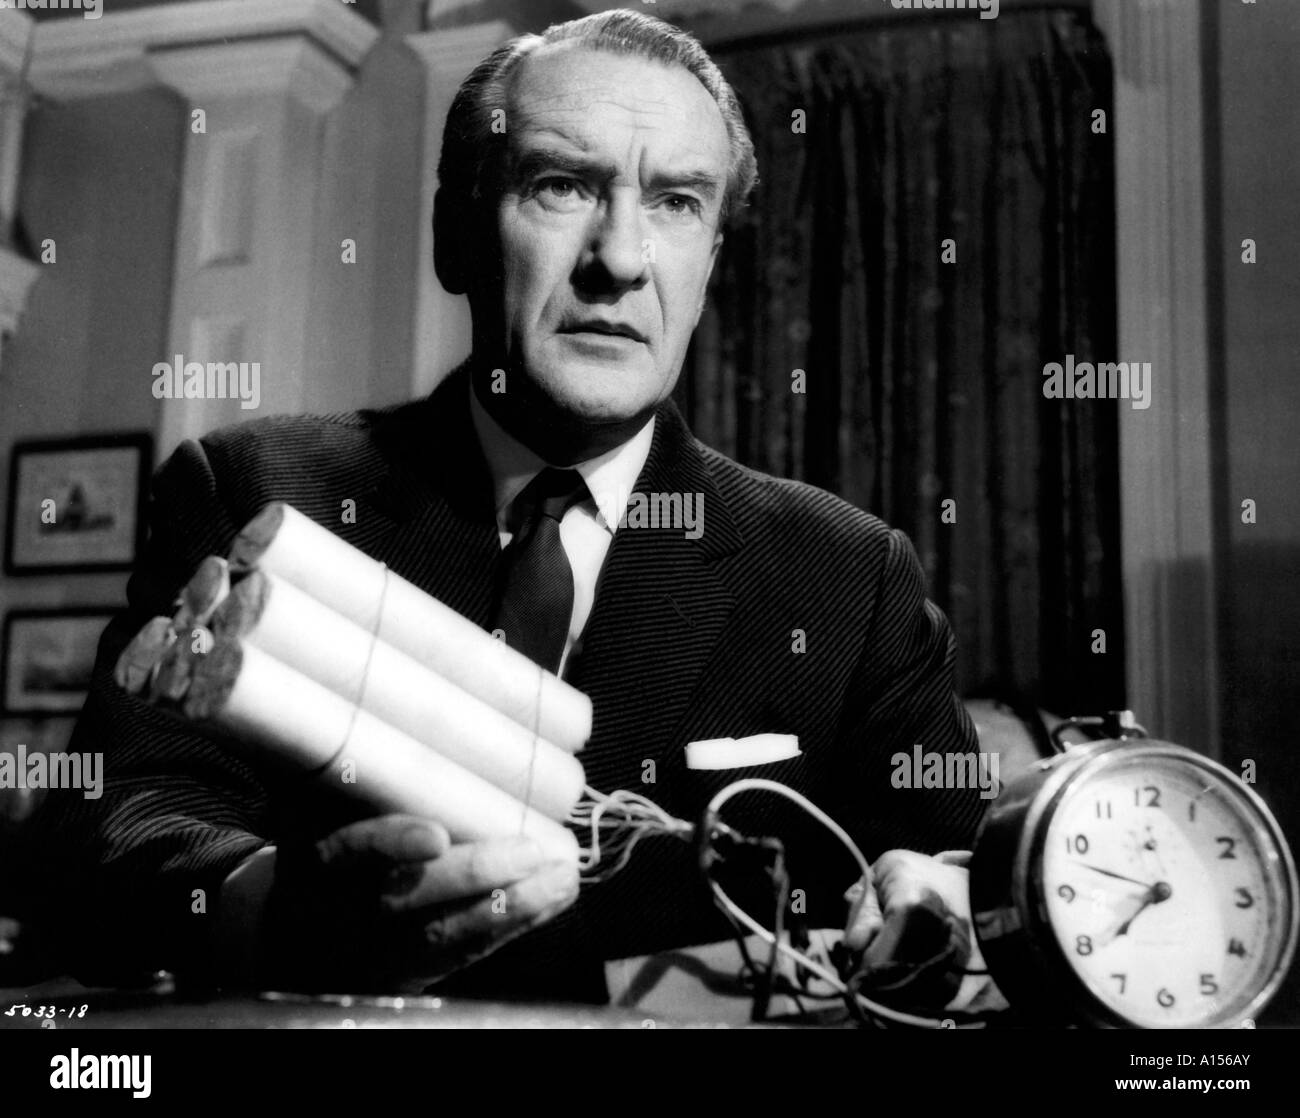 The Village Of The Damned Year 1960 Director Wolf Rilla George Sanders Based upon John Wyndham s book - Stock Image